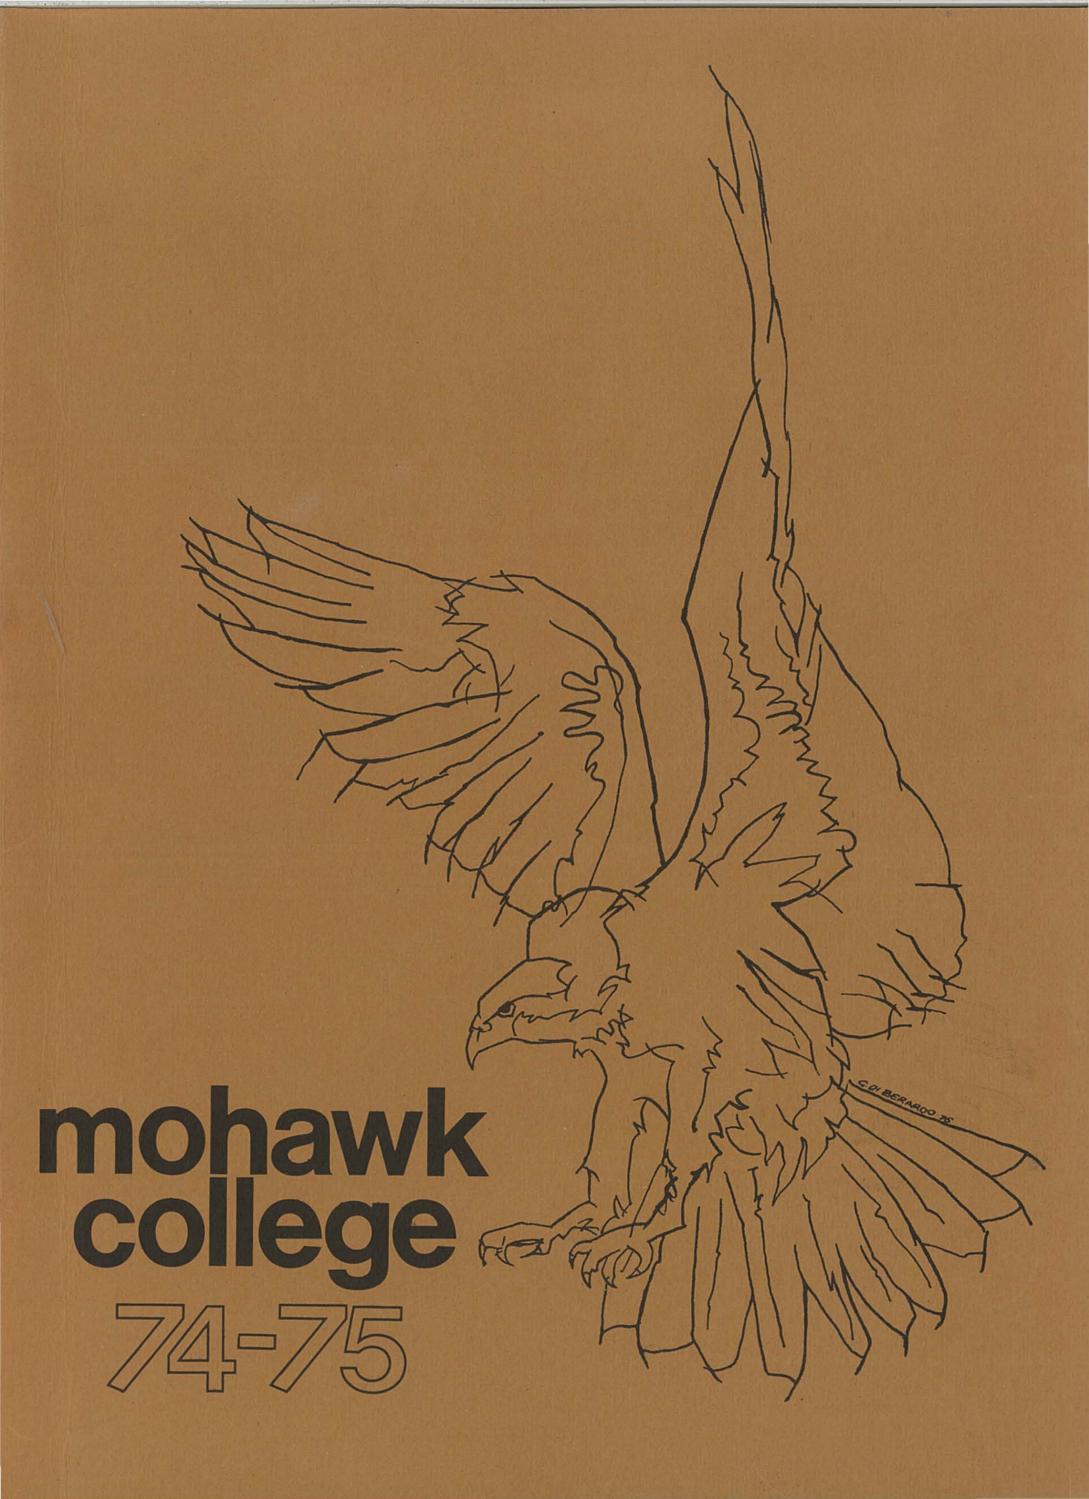 1974-75 Yearbook by Mohawk College Alumni Association - issuu